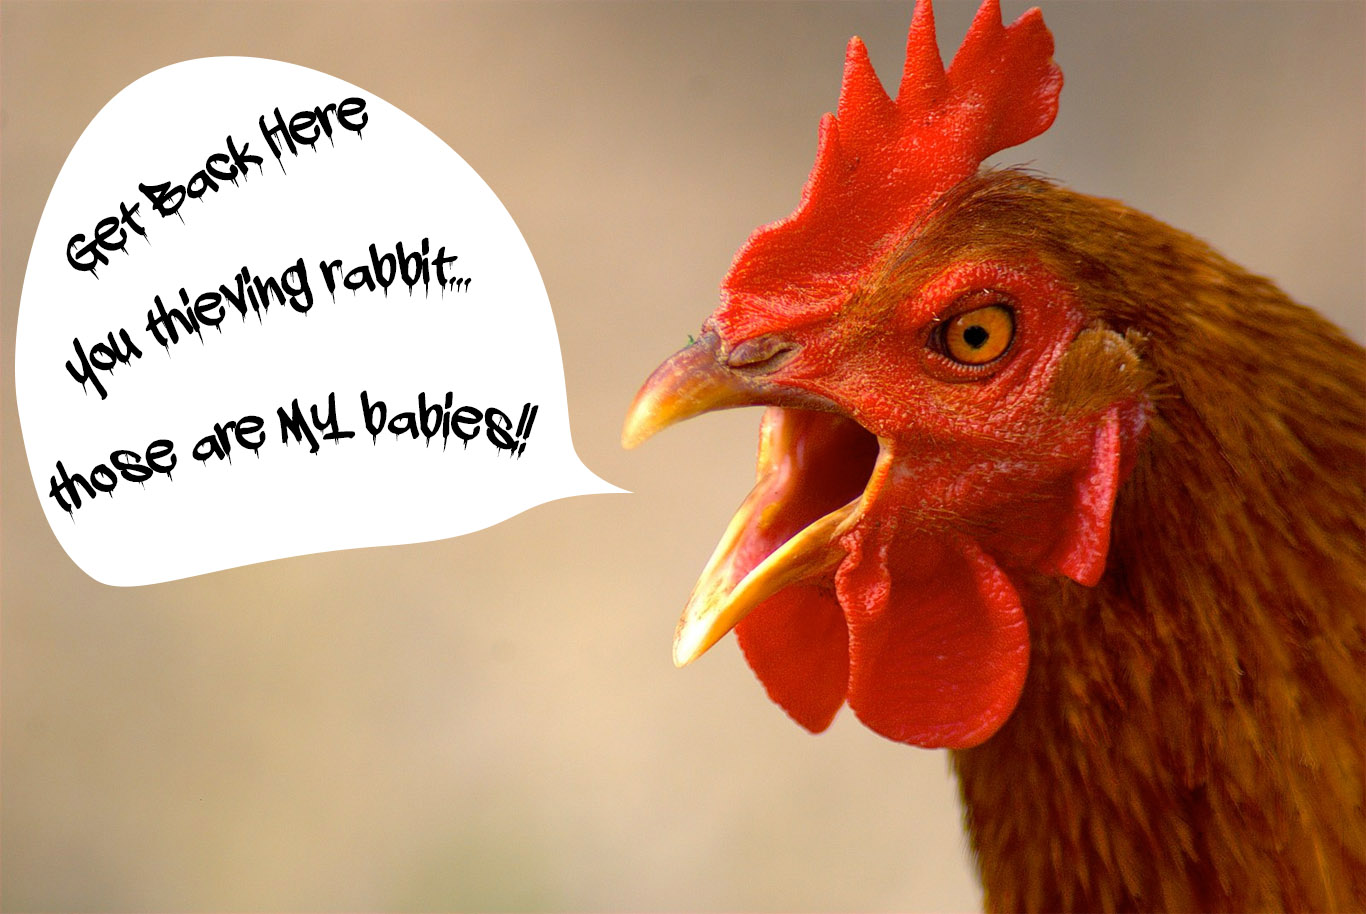 Chickens Good Quotes: Annoying Rooster Quotes And Sayings. QuotesGram